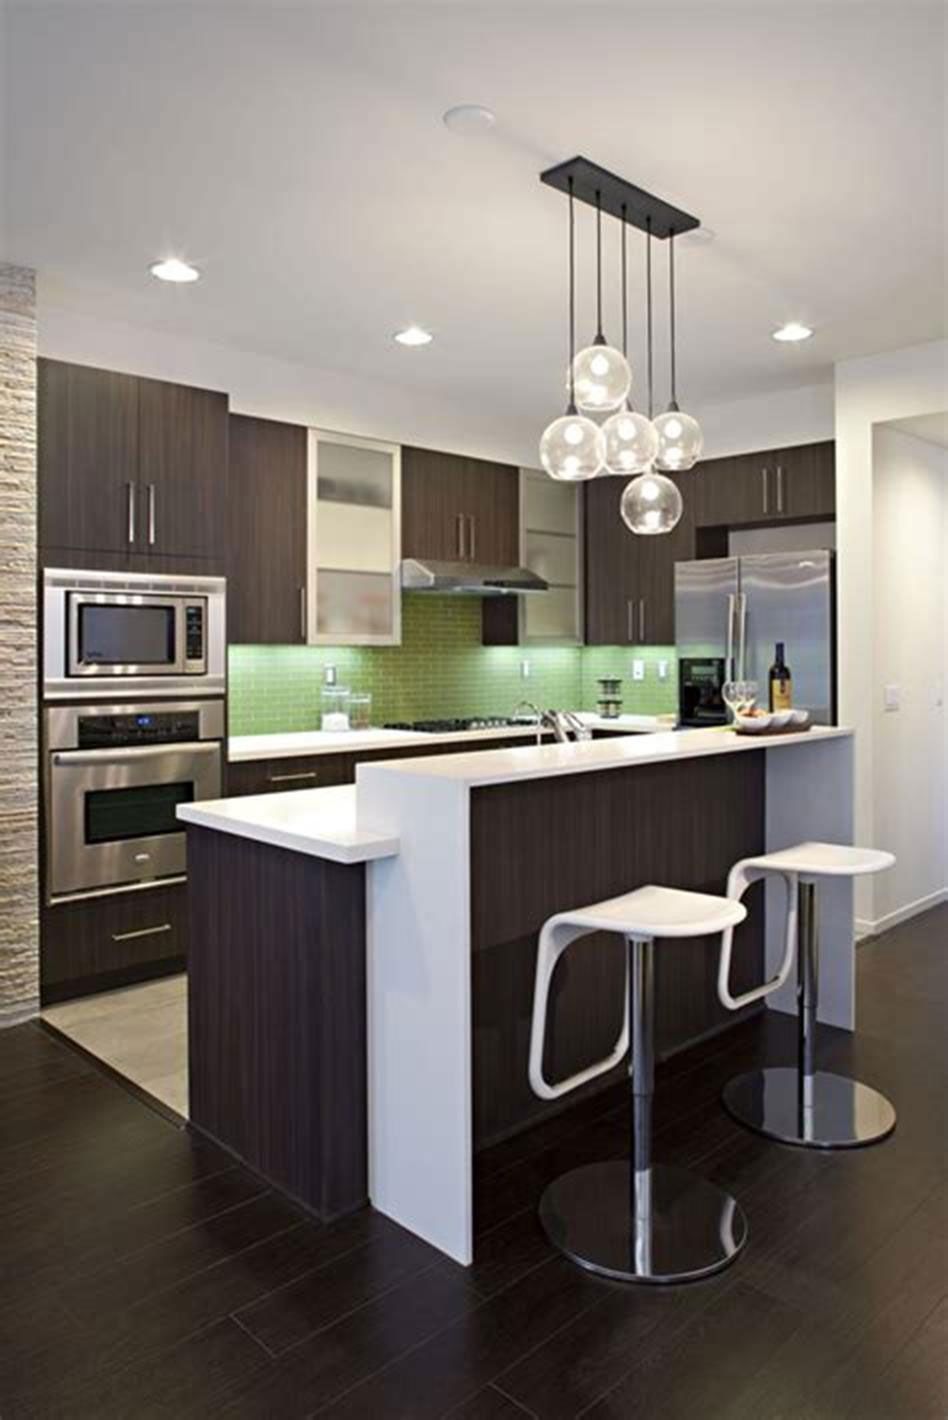 17 Charming Modern Design Ideas For Small Spaces Modern Kitchen